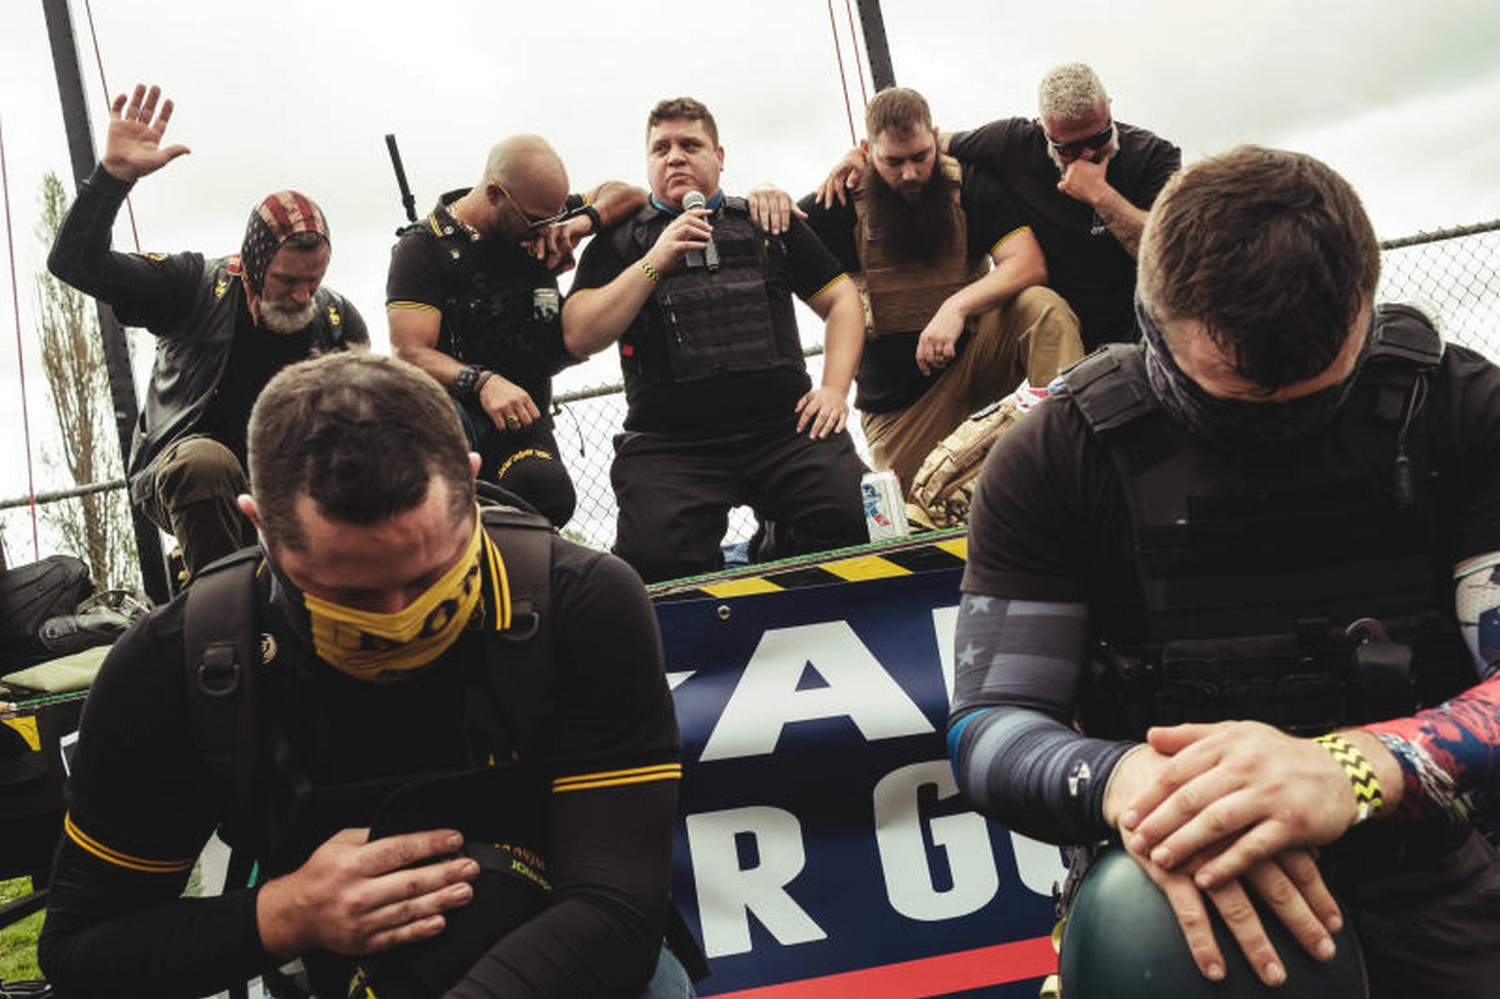 Trump's Proud Boys: US chauvinists who refuse to apologise